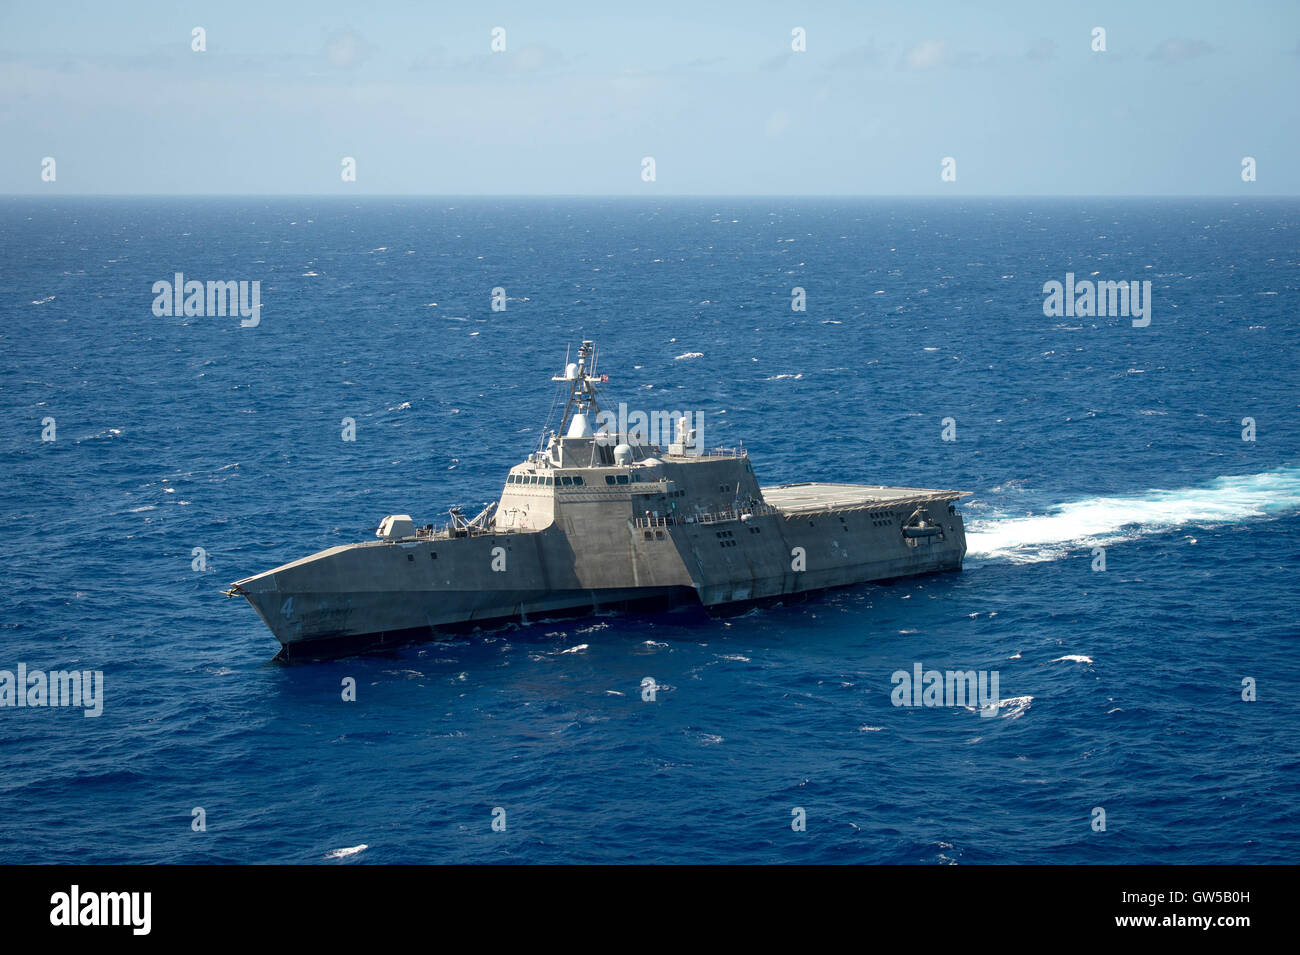 US Navy Littoral combat ship USS Coronado steams in close formation during the Rim of the Pacific exercise June - Stock Image